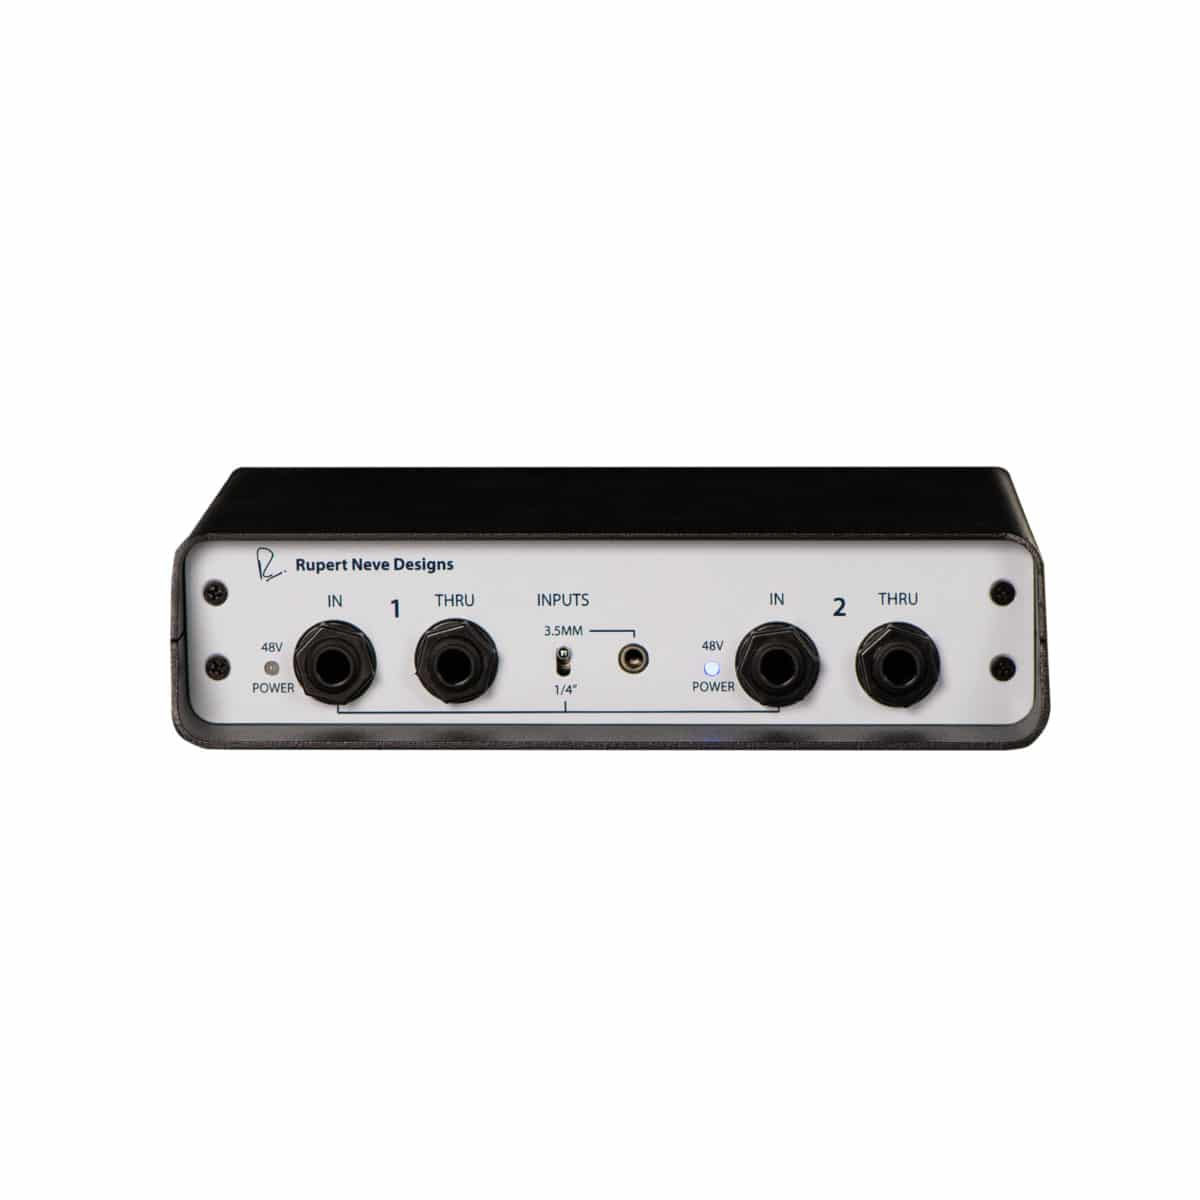 Rupert Neve RNDI S 01 Pro Audio, Outboard, D.I./Reamp